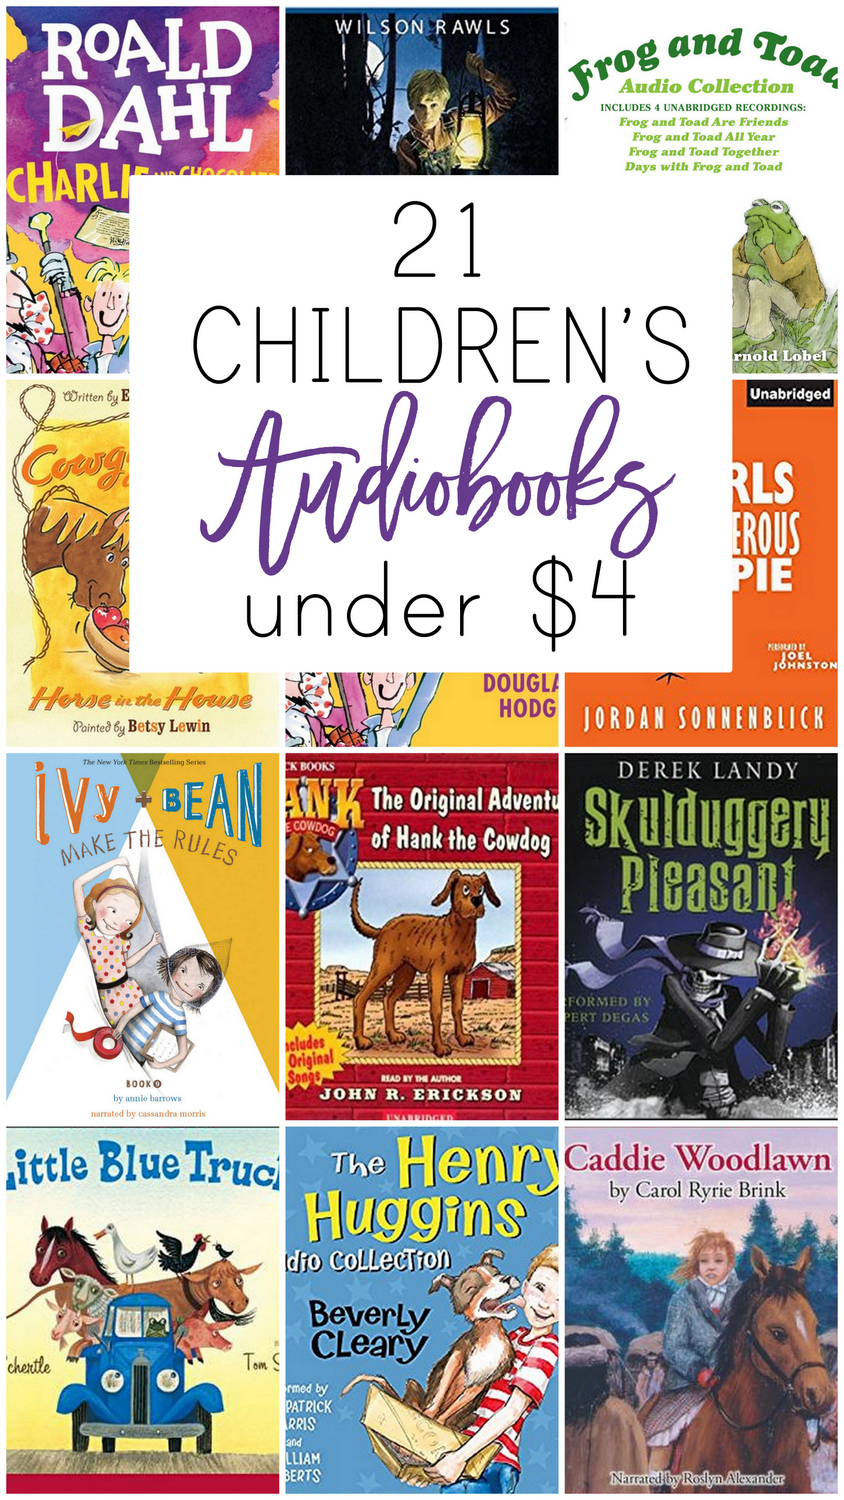 These 21 children's audiobooks are total winners and worth adding to your collection while they're on sale for less than $4